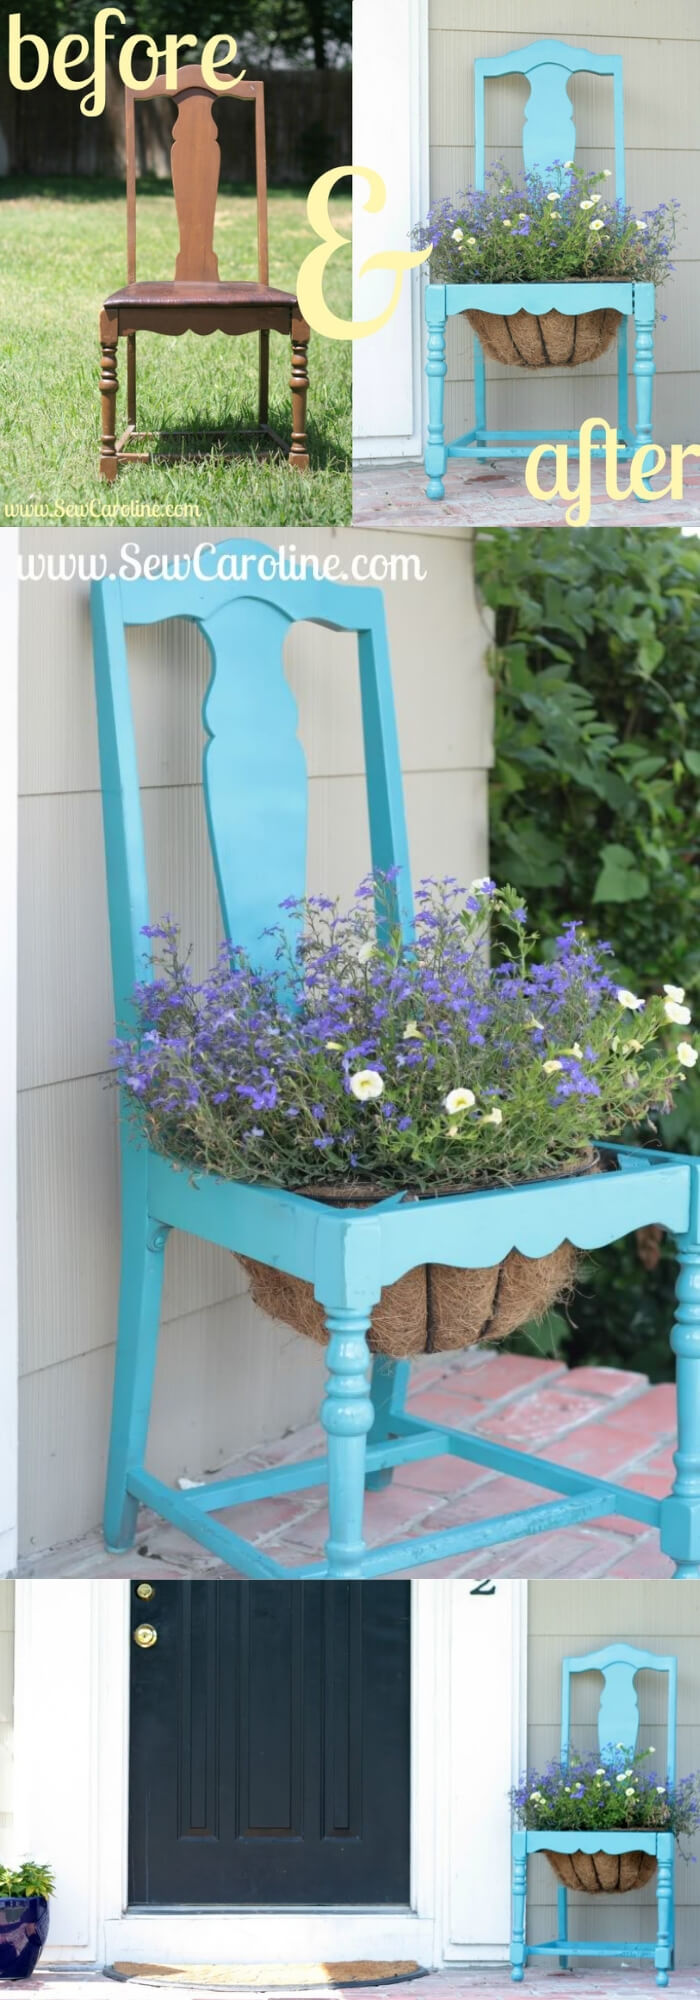 Before and After DIY Chair Planter   Creative Upcycled DIY Chair Planter Ideas For Your Garden